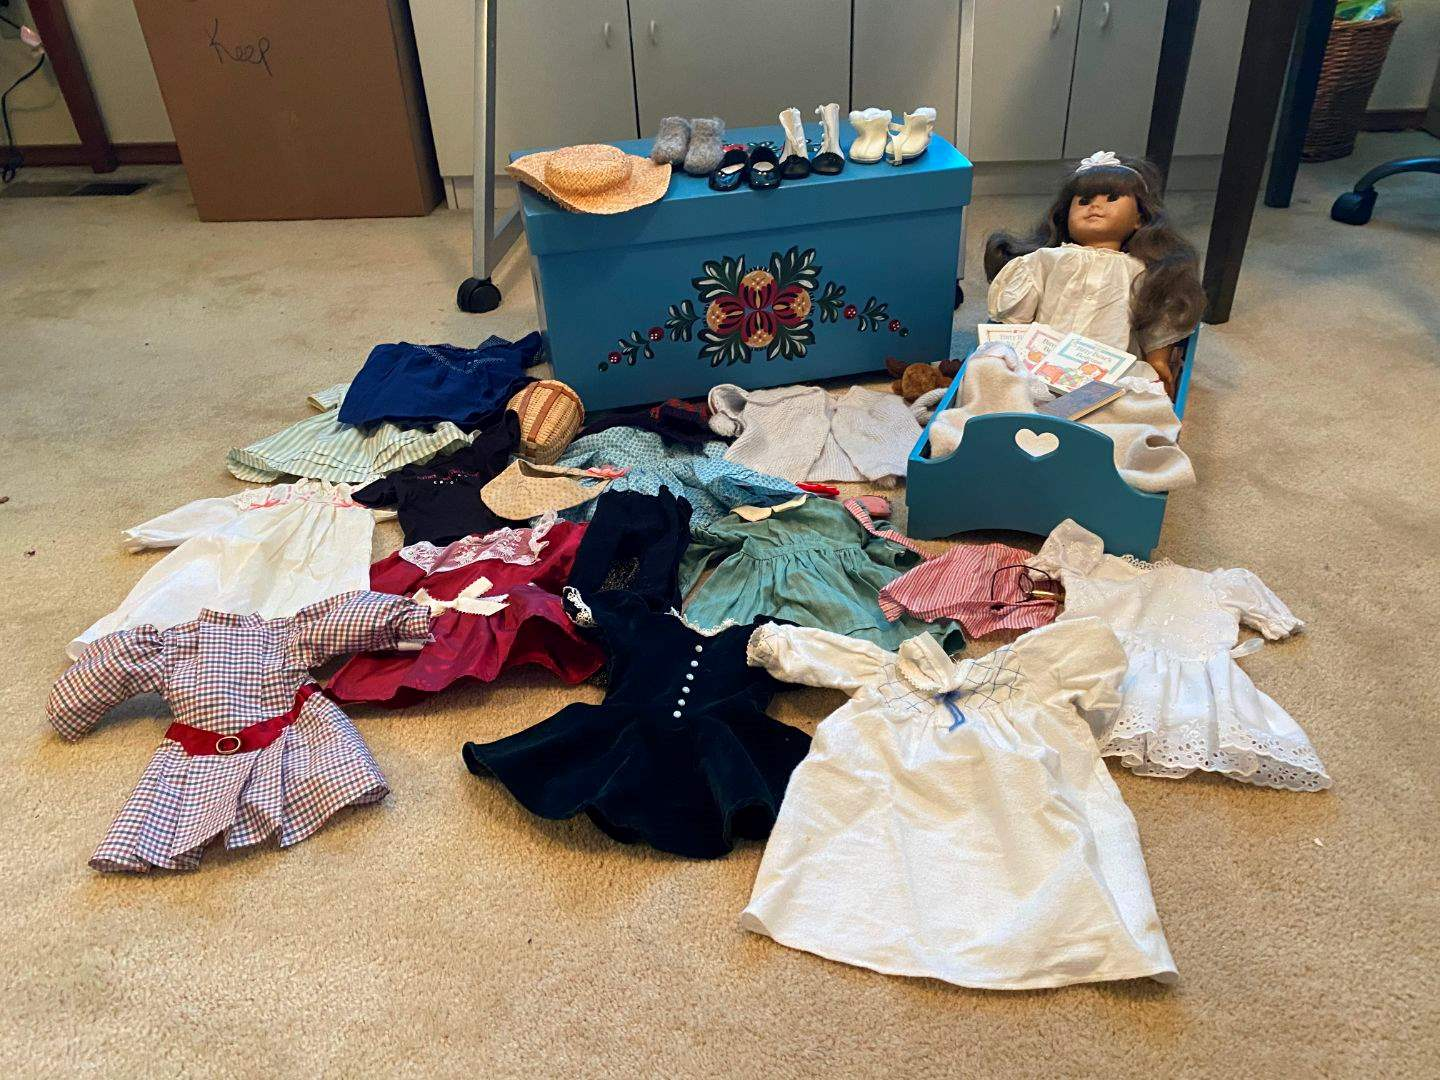 Lot # 160 - American Girl Doll, American Girl Doll Bed & Chest, American Girl Doll Clothes  (main image)